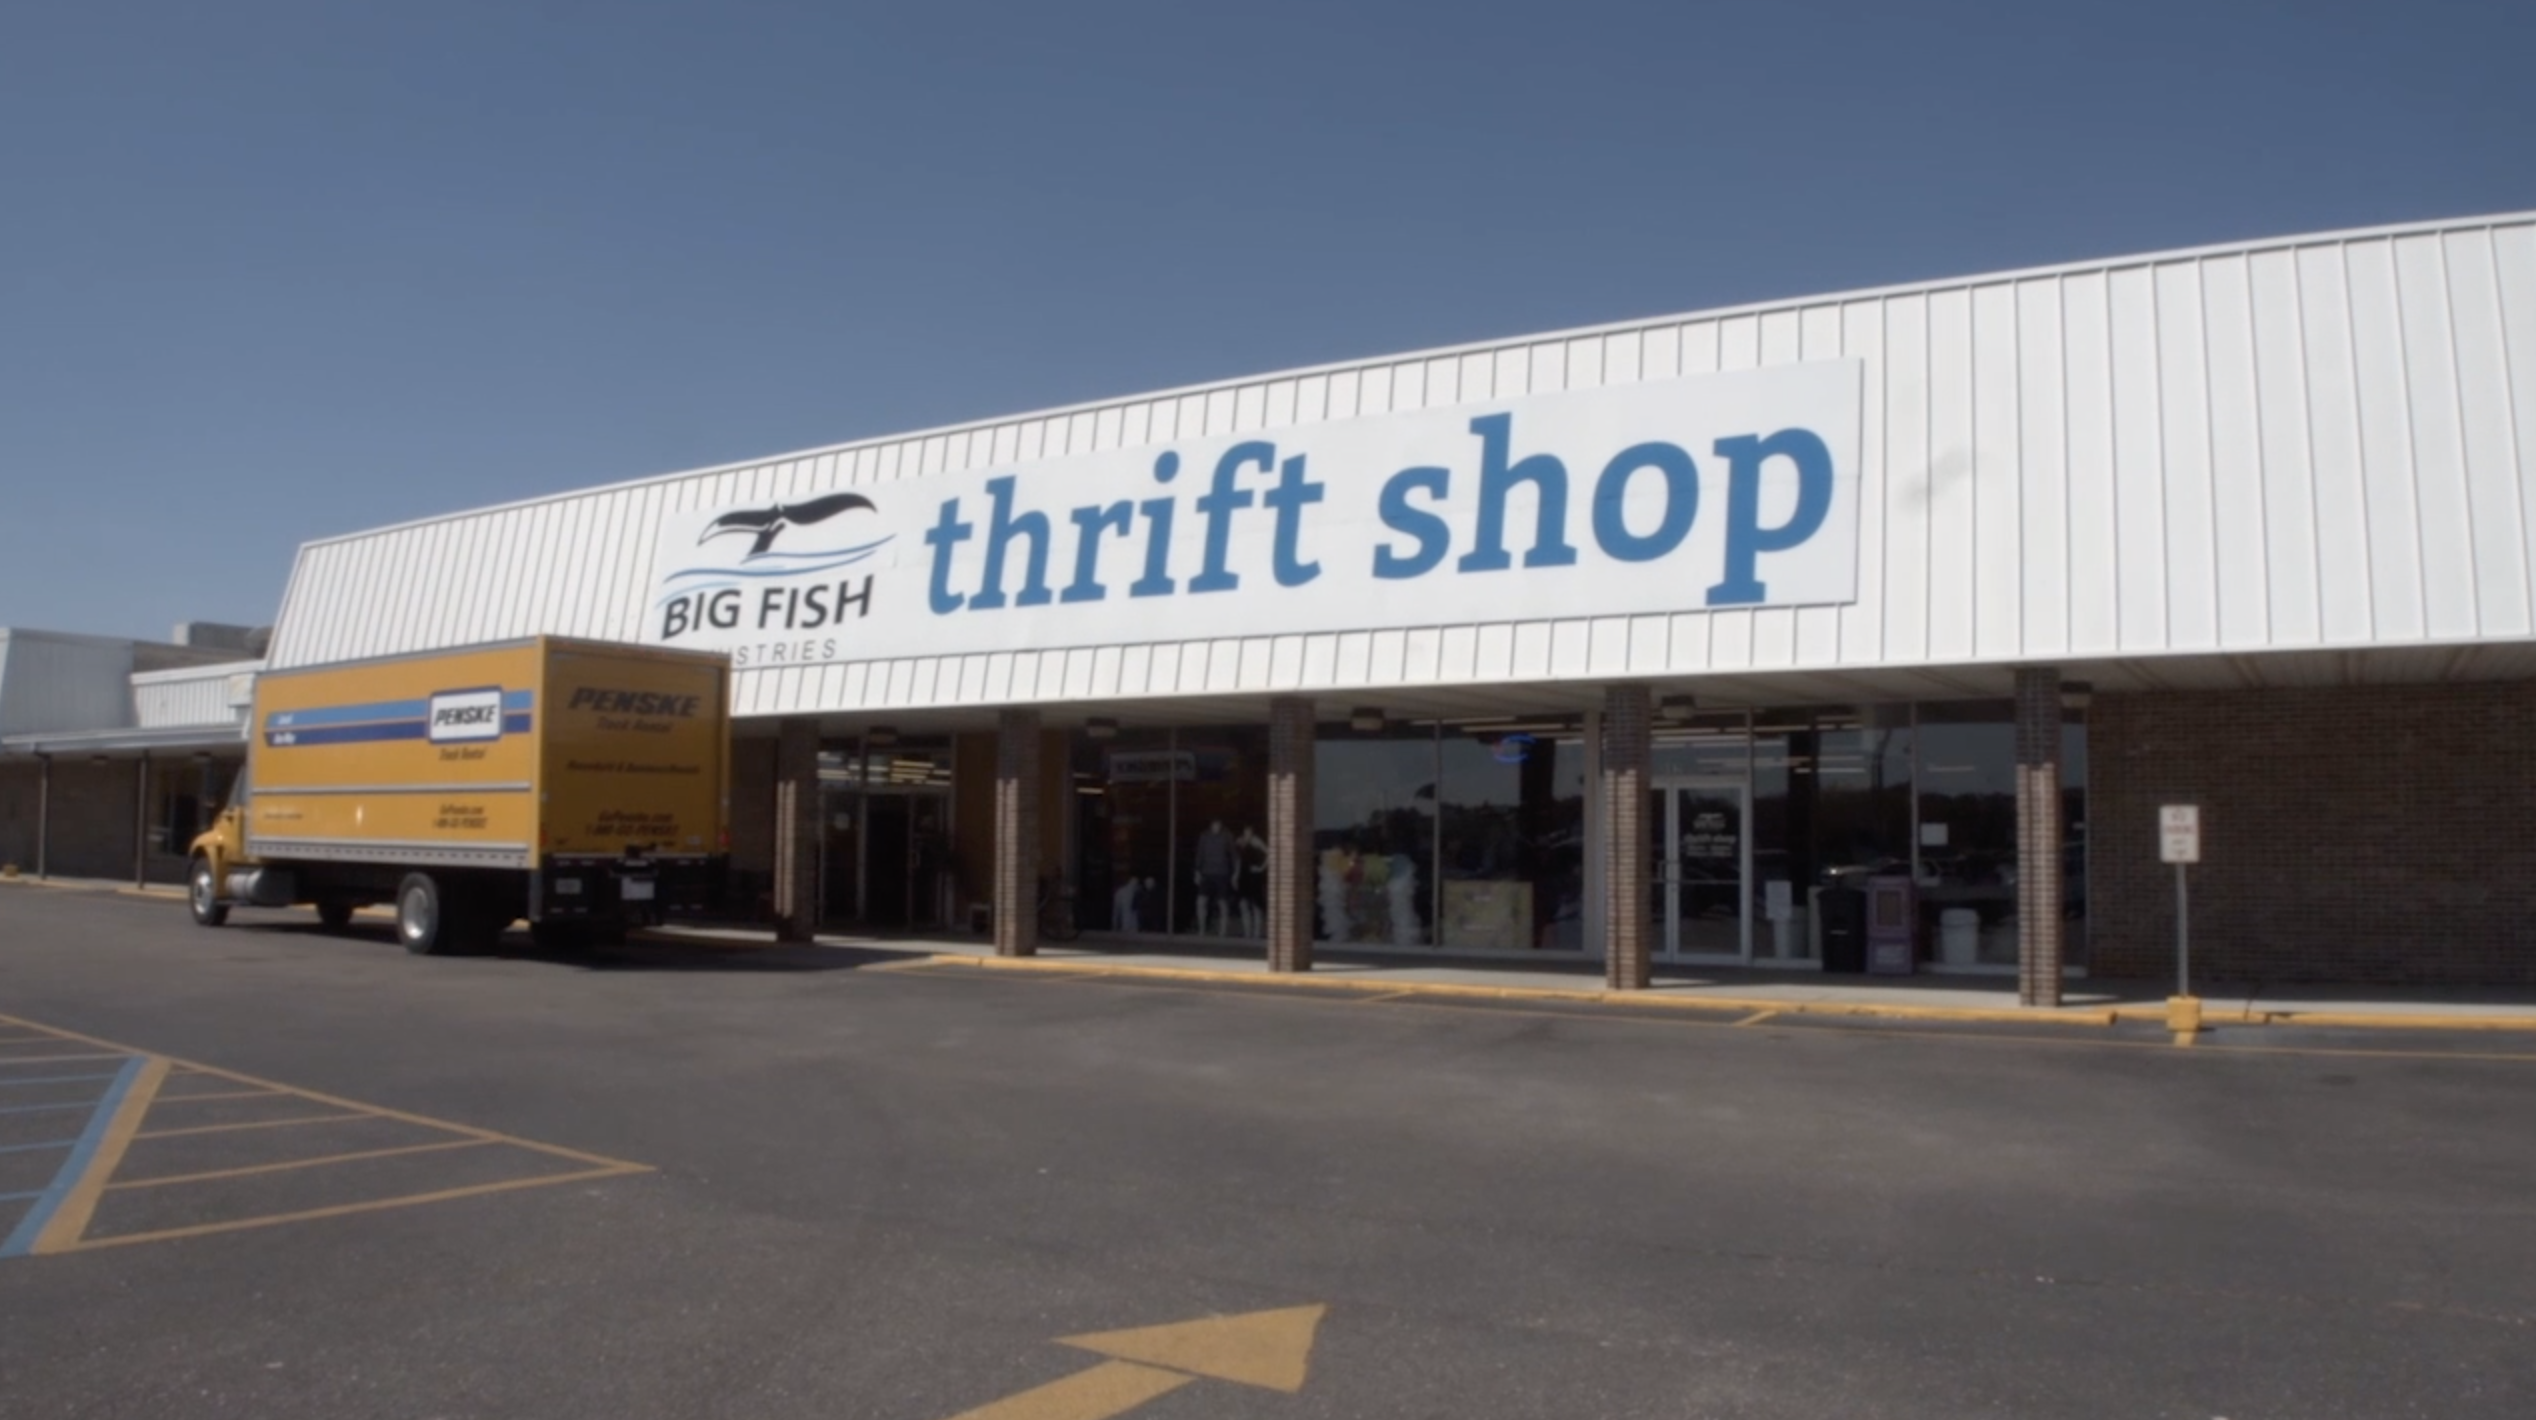 Big Fish Ministries Thrift Shop Facebook Online Marketplace, Thrift Shop Donations & More